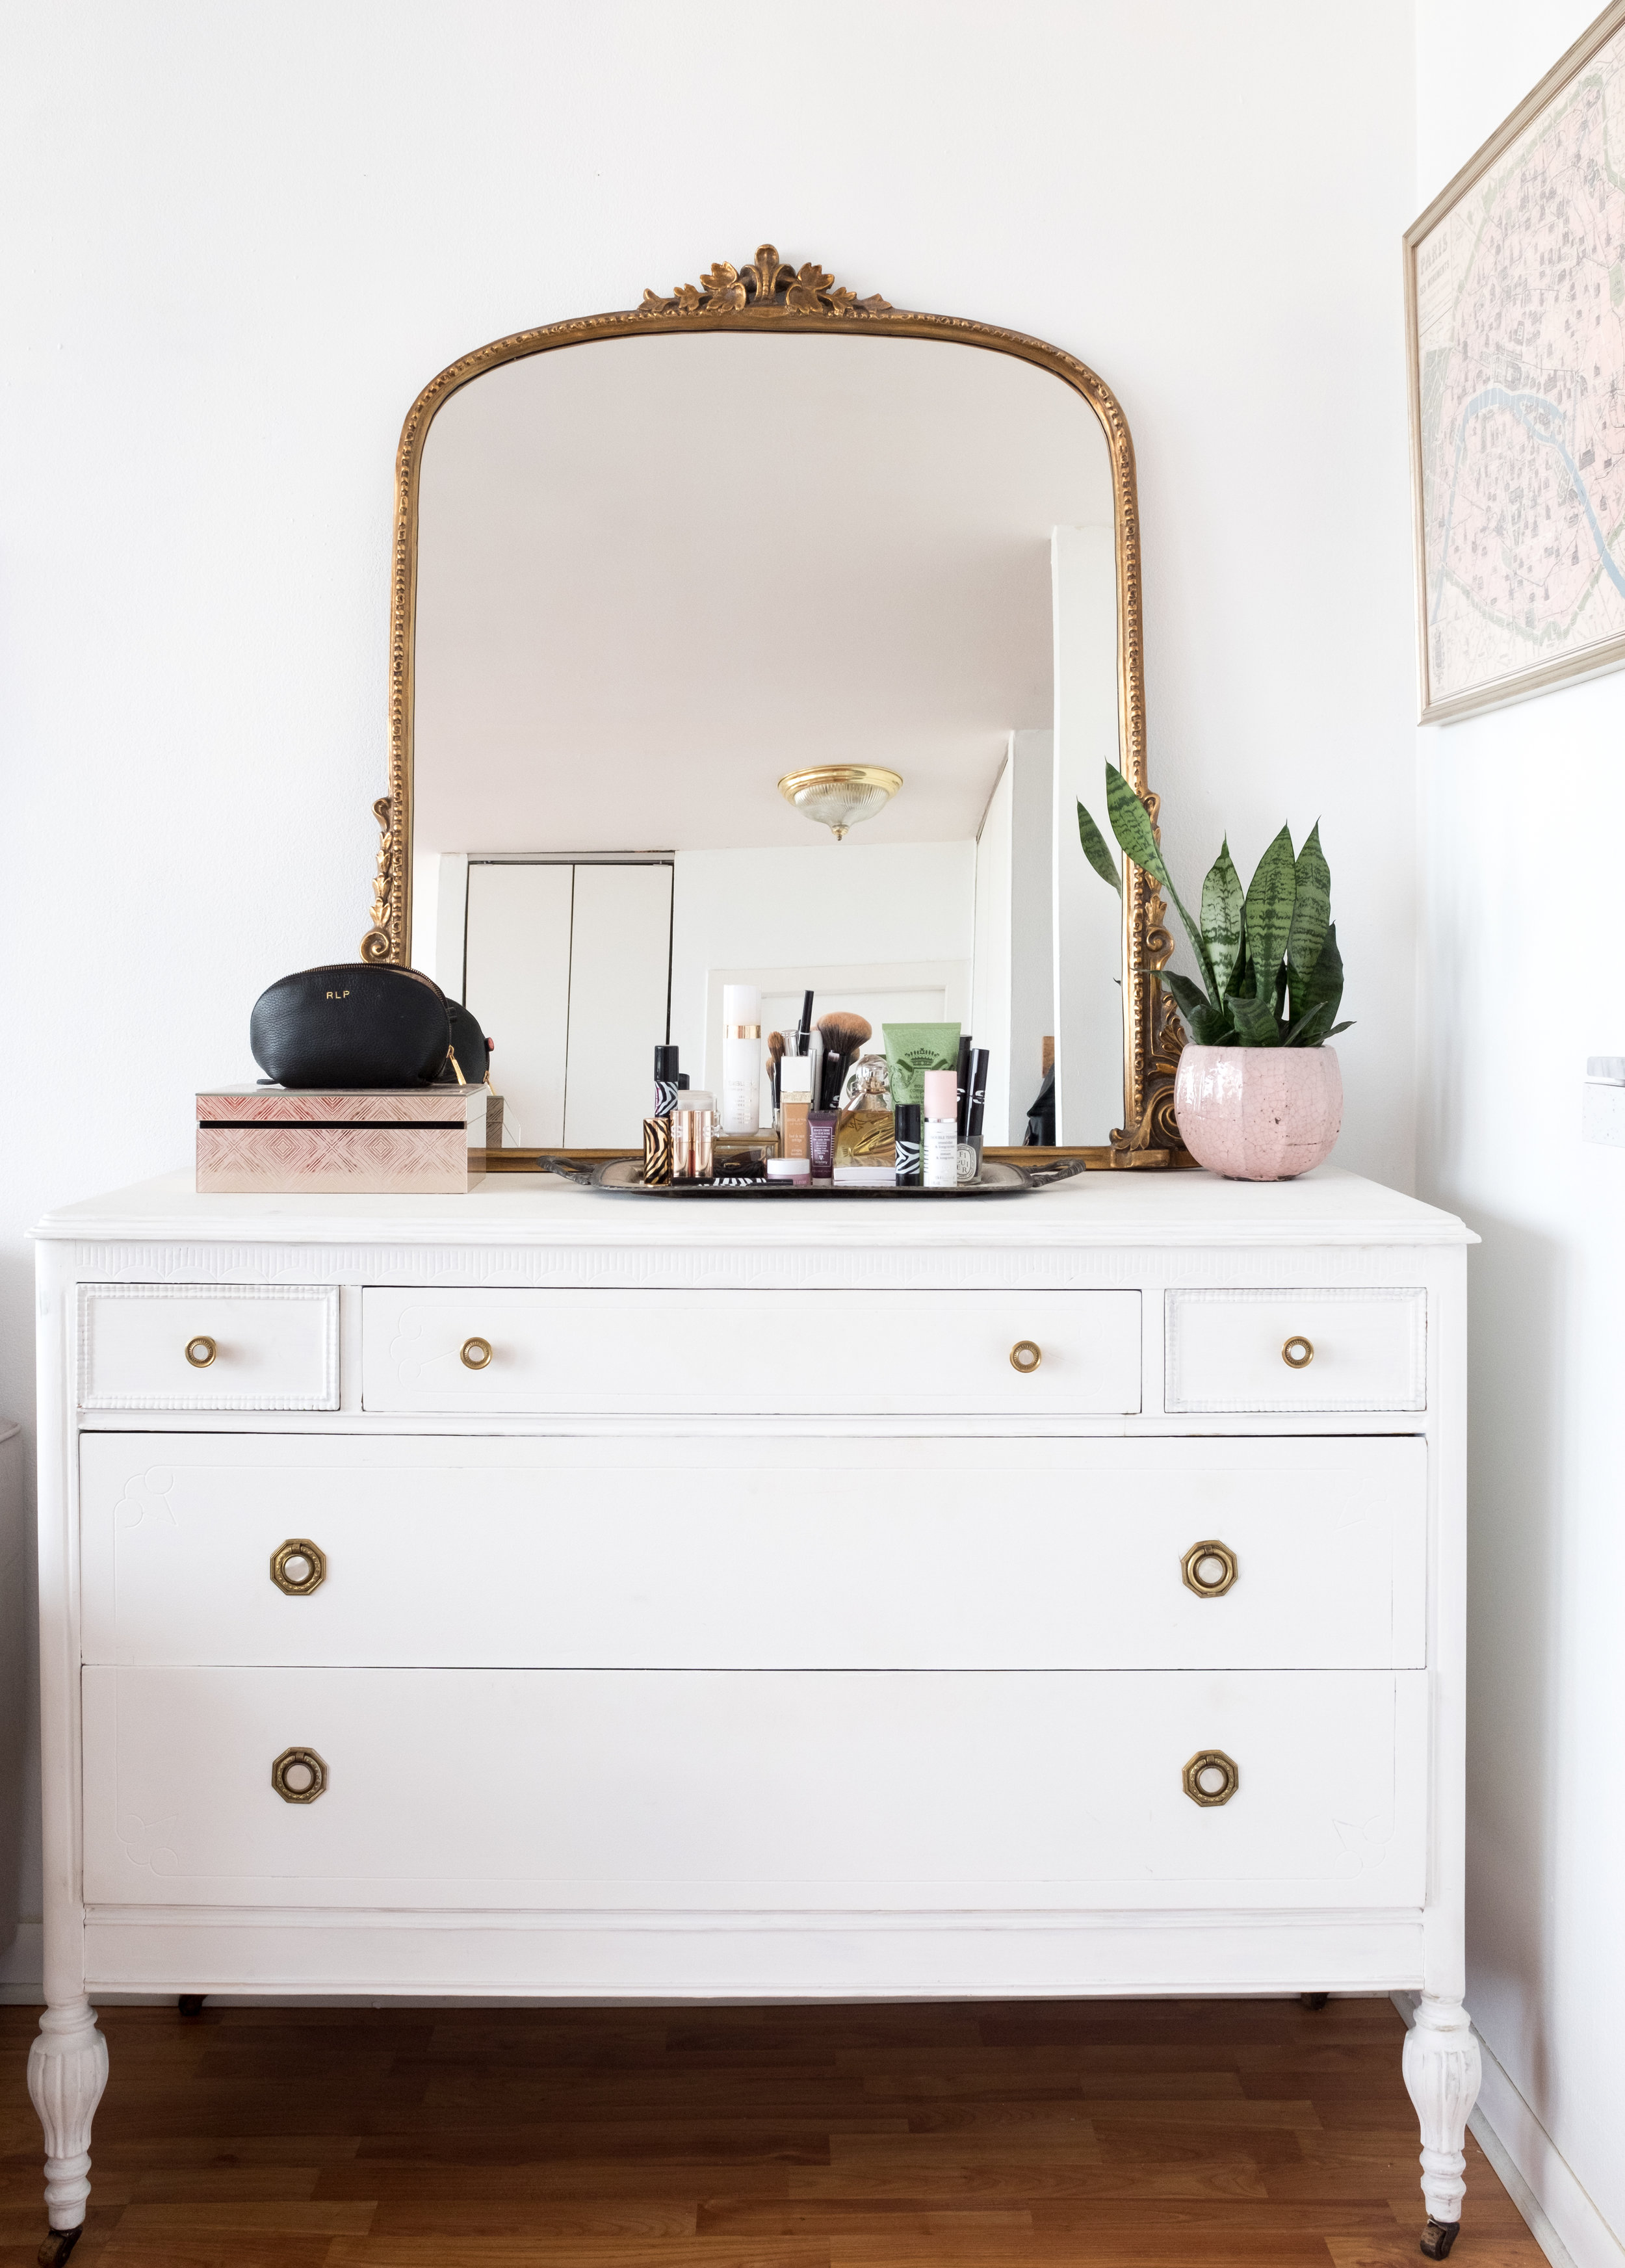 anthropologie mirror everyday parisian apartment